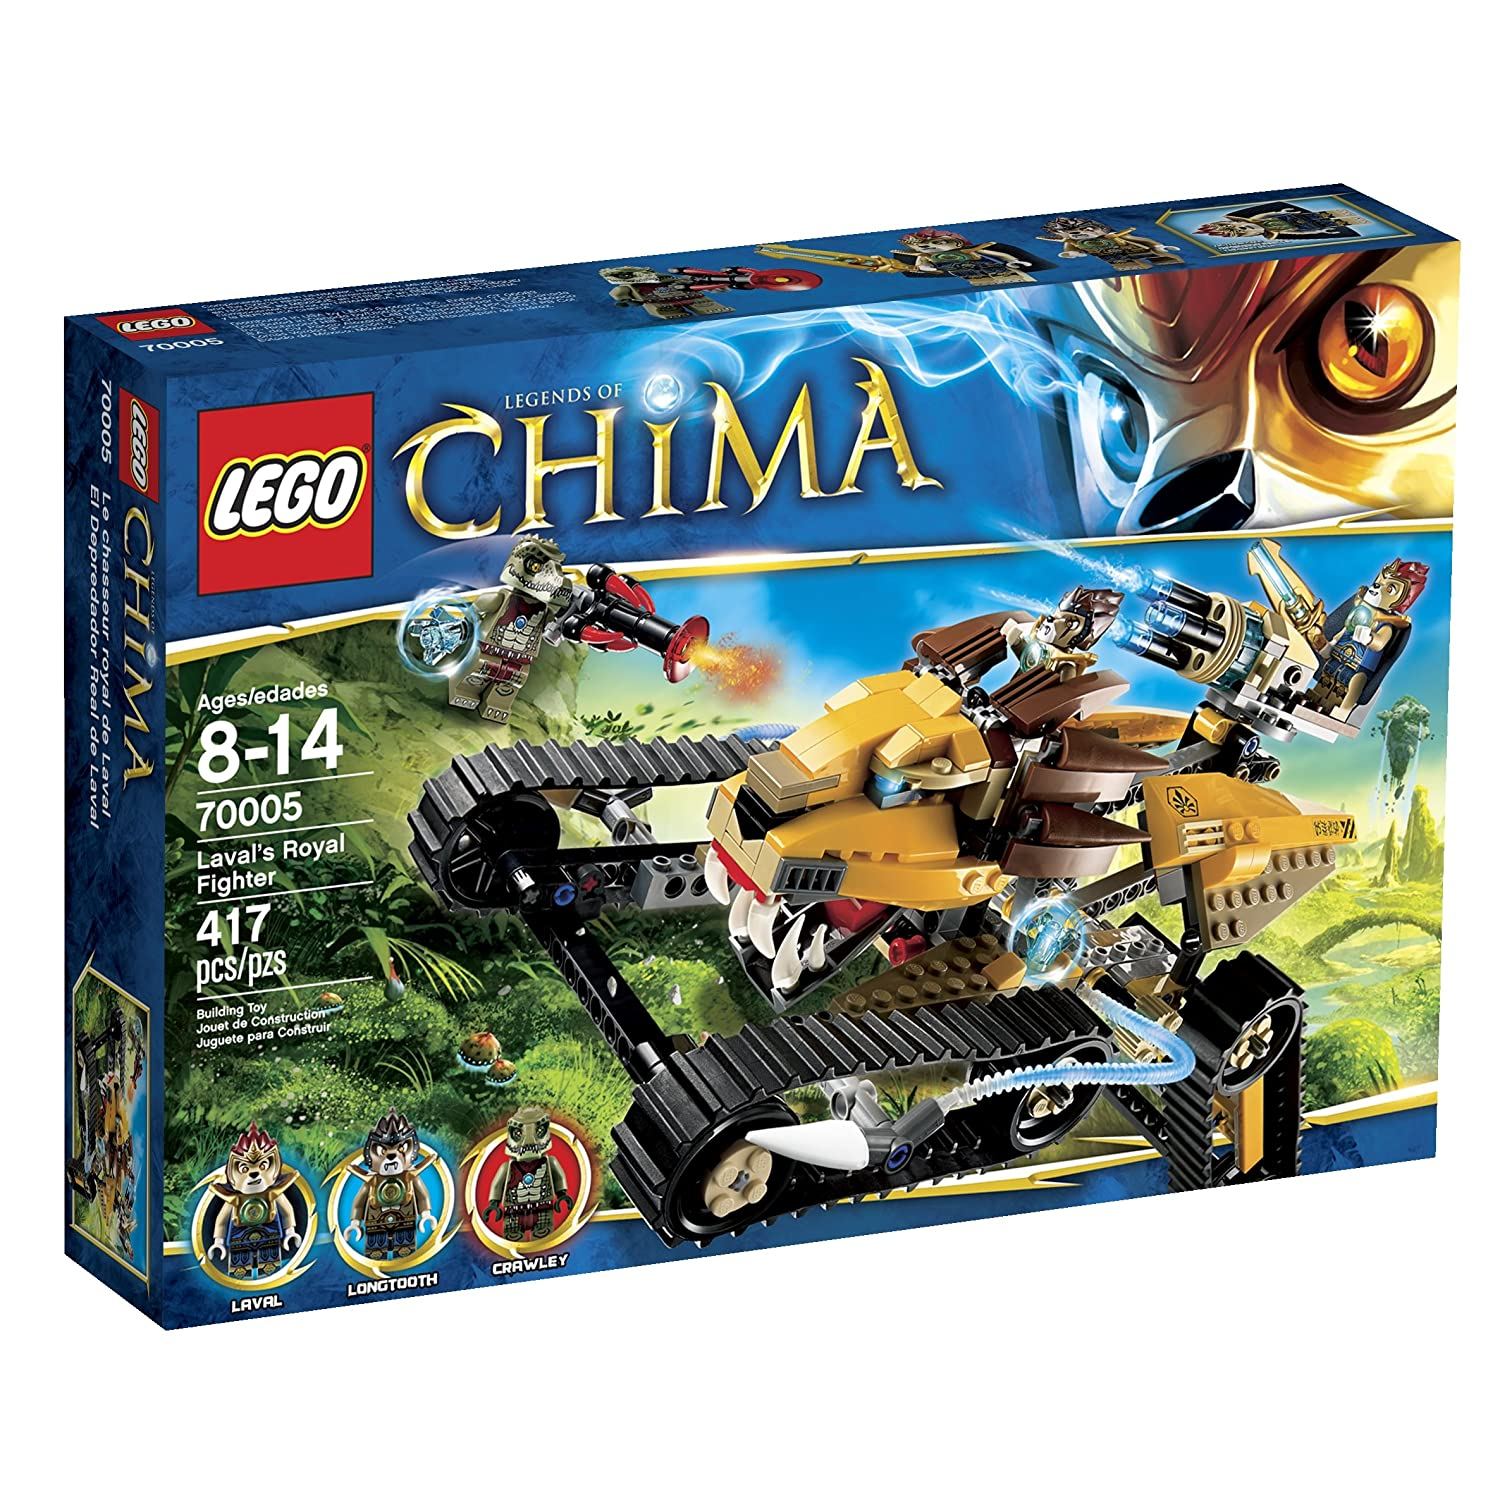 Top 9 Best LEGO Chima Sets Reviews in 2020 7